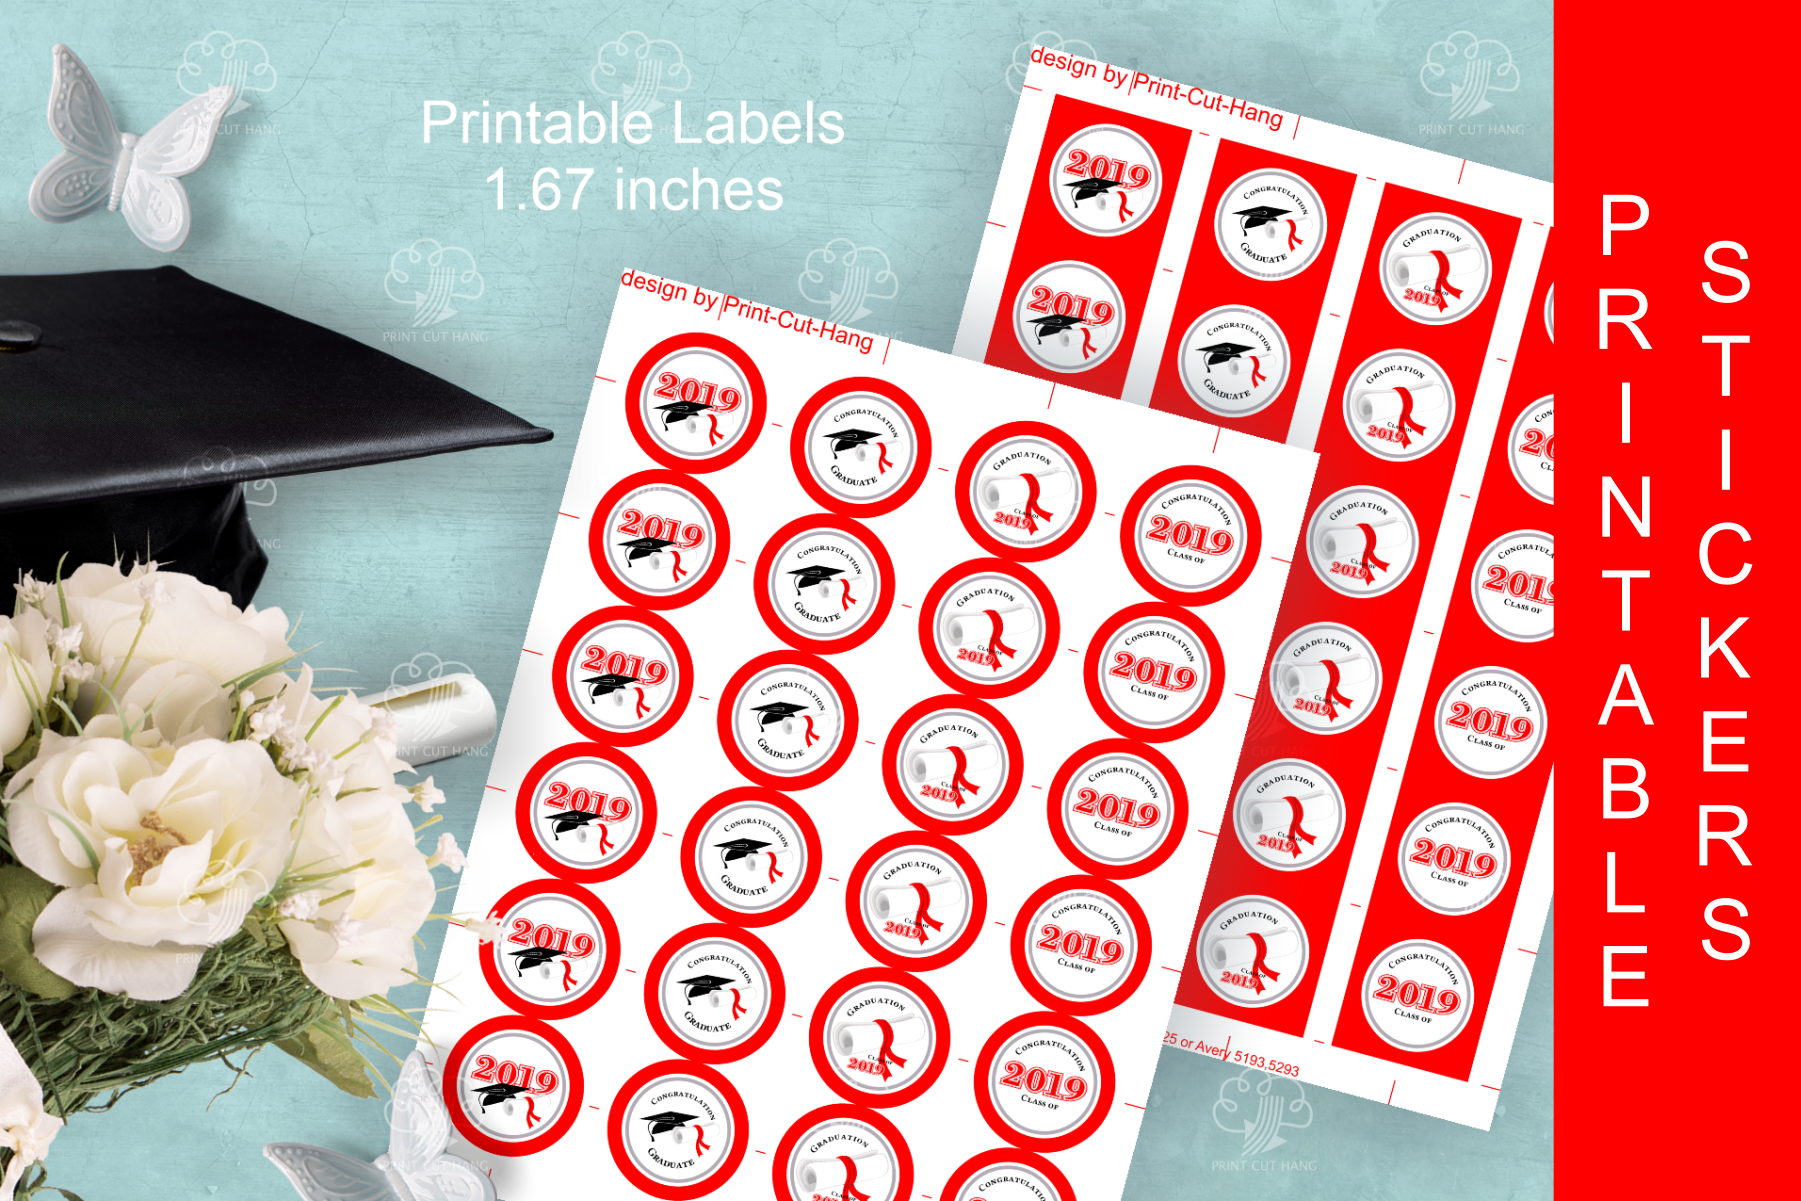 Red Printable Stickers Graduation 2019 - size 1.67 inches example image 3